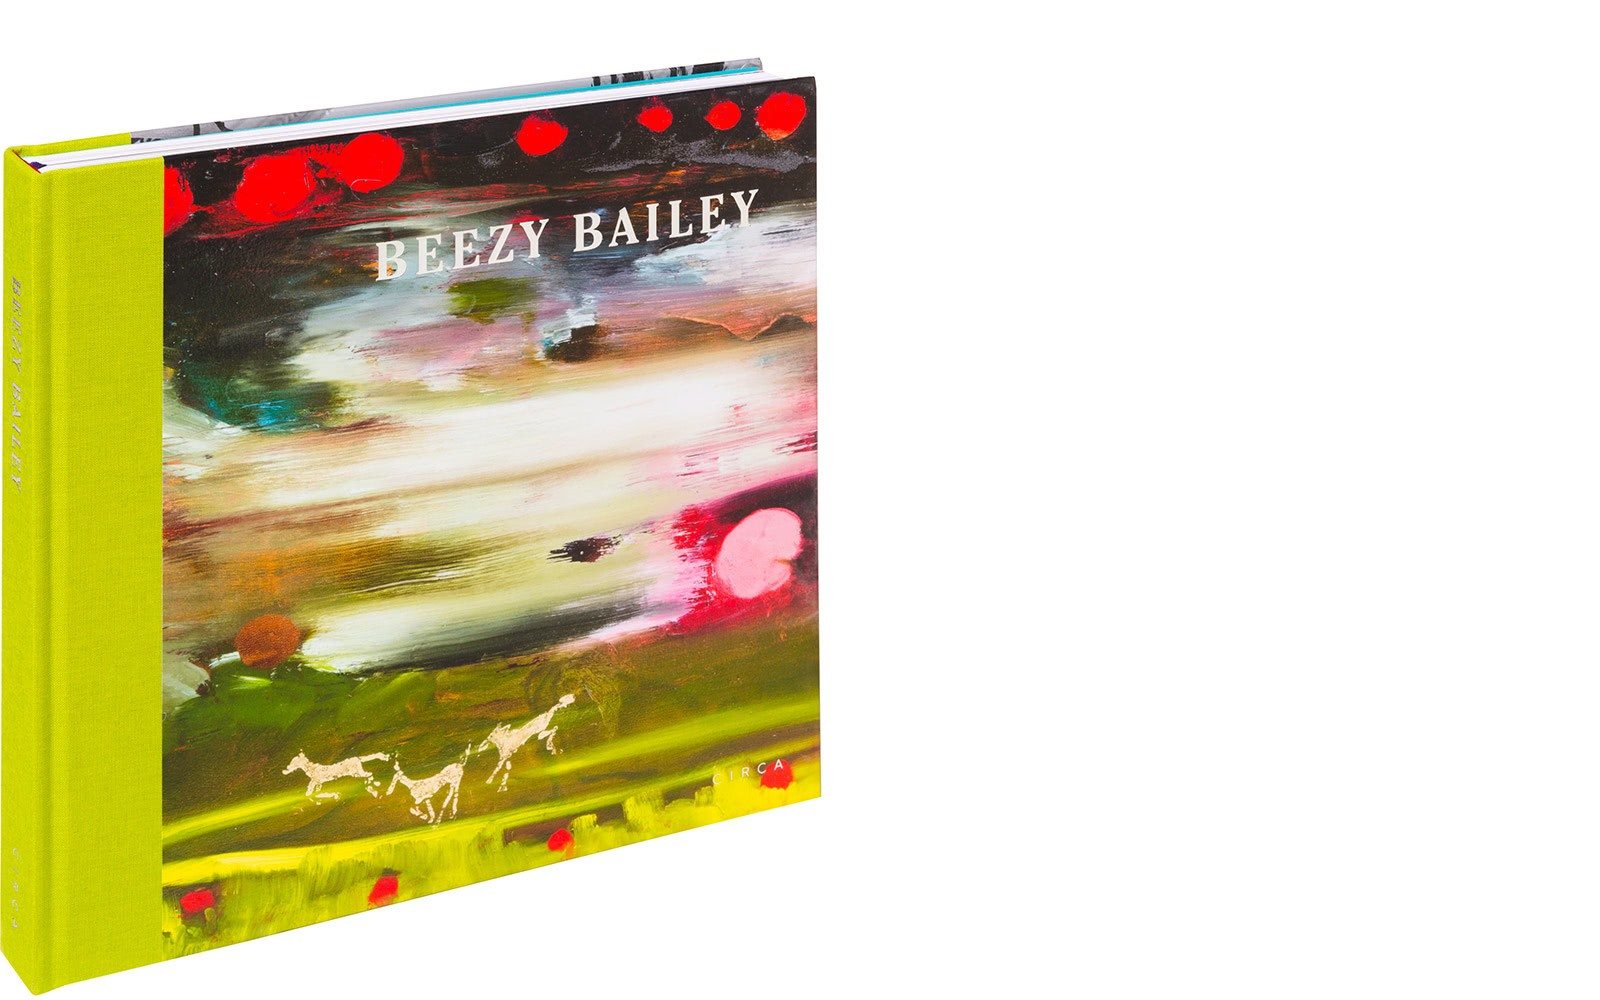 Beezy Bailey cover